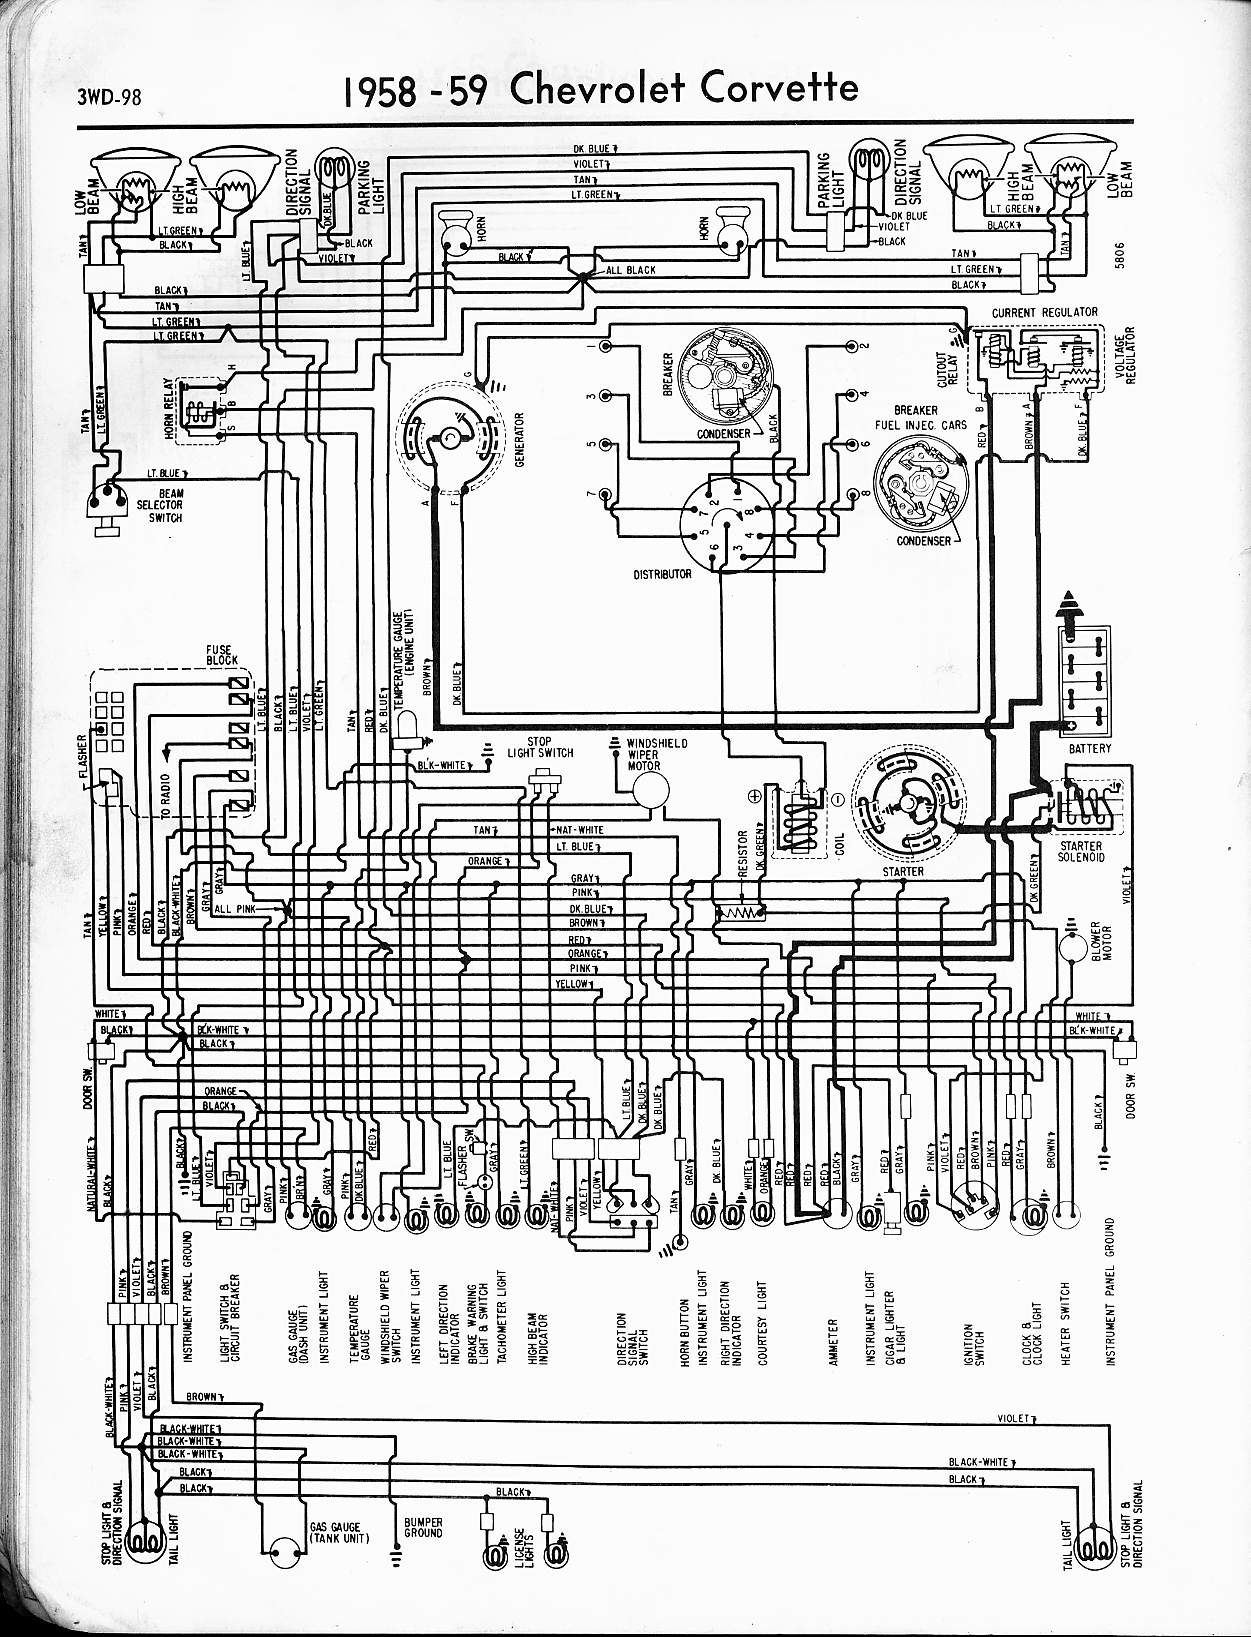 1957 chevy wiring lights wiring diagram electricity basics 101 u2022 rh  agarwalexports co 1956 Chevy Truck Wiring Diagram 1957 Chevy Bel Air  Wiring-Diagram